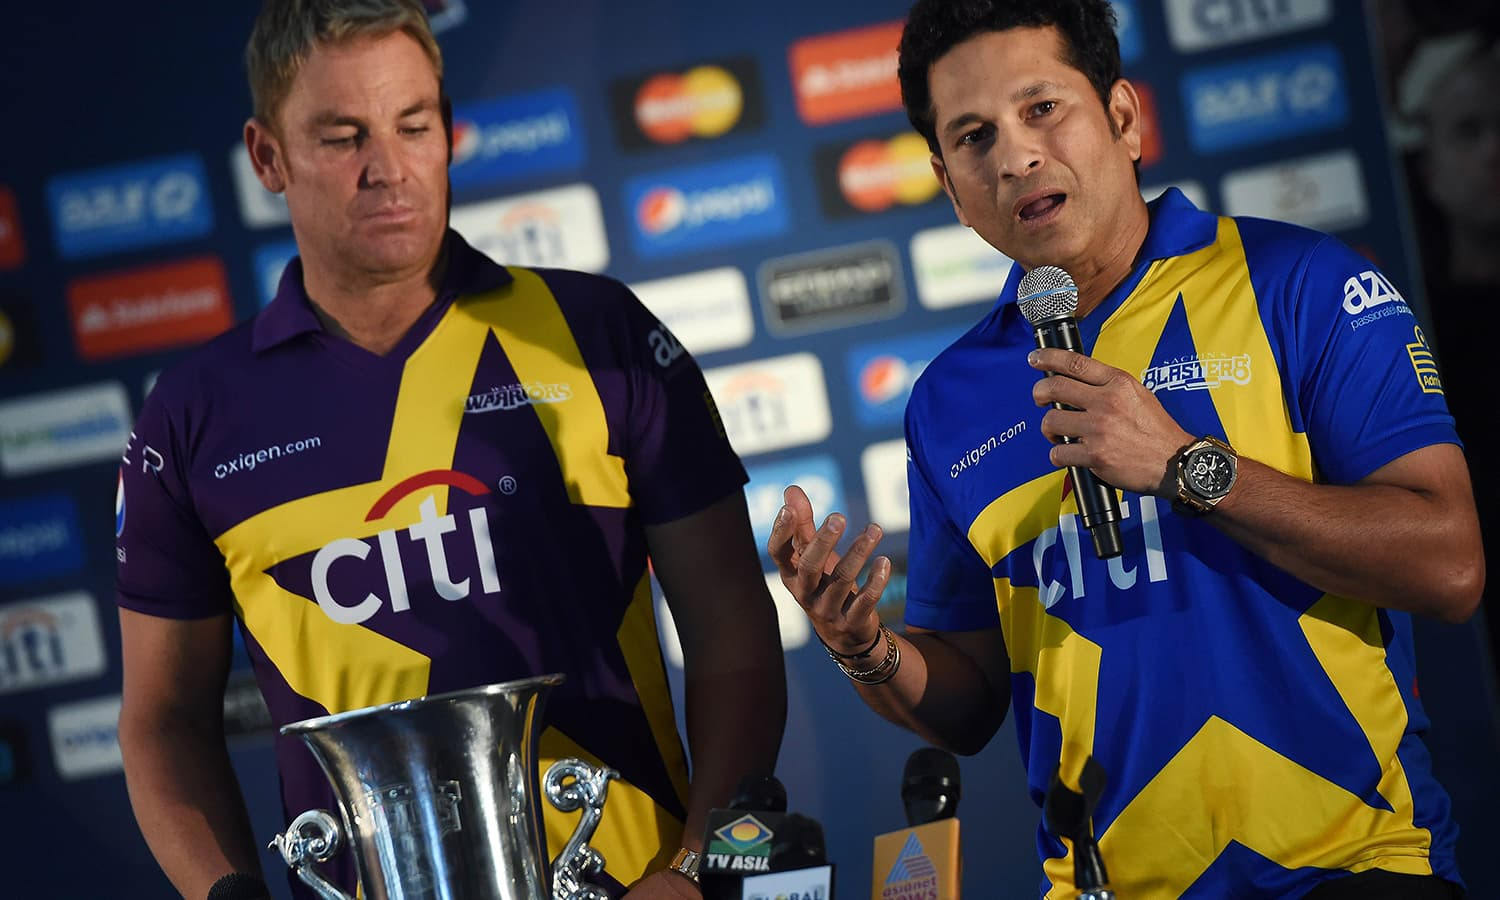 "Retired Indian cricketer Sachin Tendulkar (R) speaks as Australia's Shane Warne looks on during a press conference in New York on November 5, 2015. Tendulkar and Warne will lead a lineup of renowned cricket players from around the world in the inaugural ""Cricket All-Stars,"" a three-game series to be played in Major League Baseball stadiums in New York , Houston and Los Angeles, to promote cricket the US. AFP PHOTO/JEWEL"